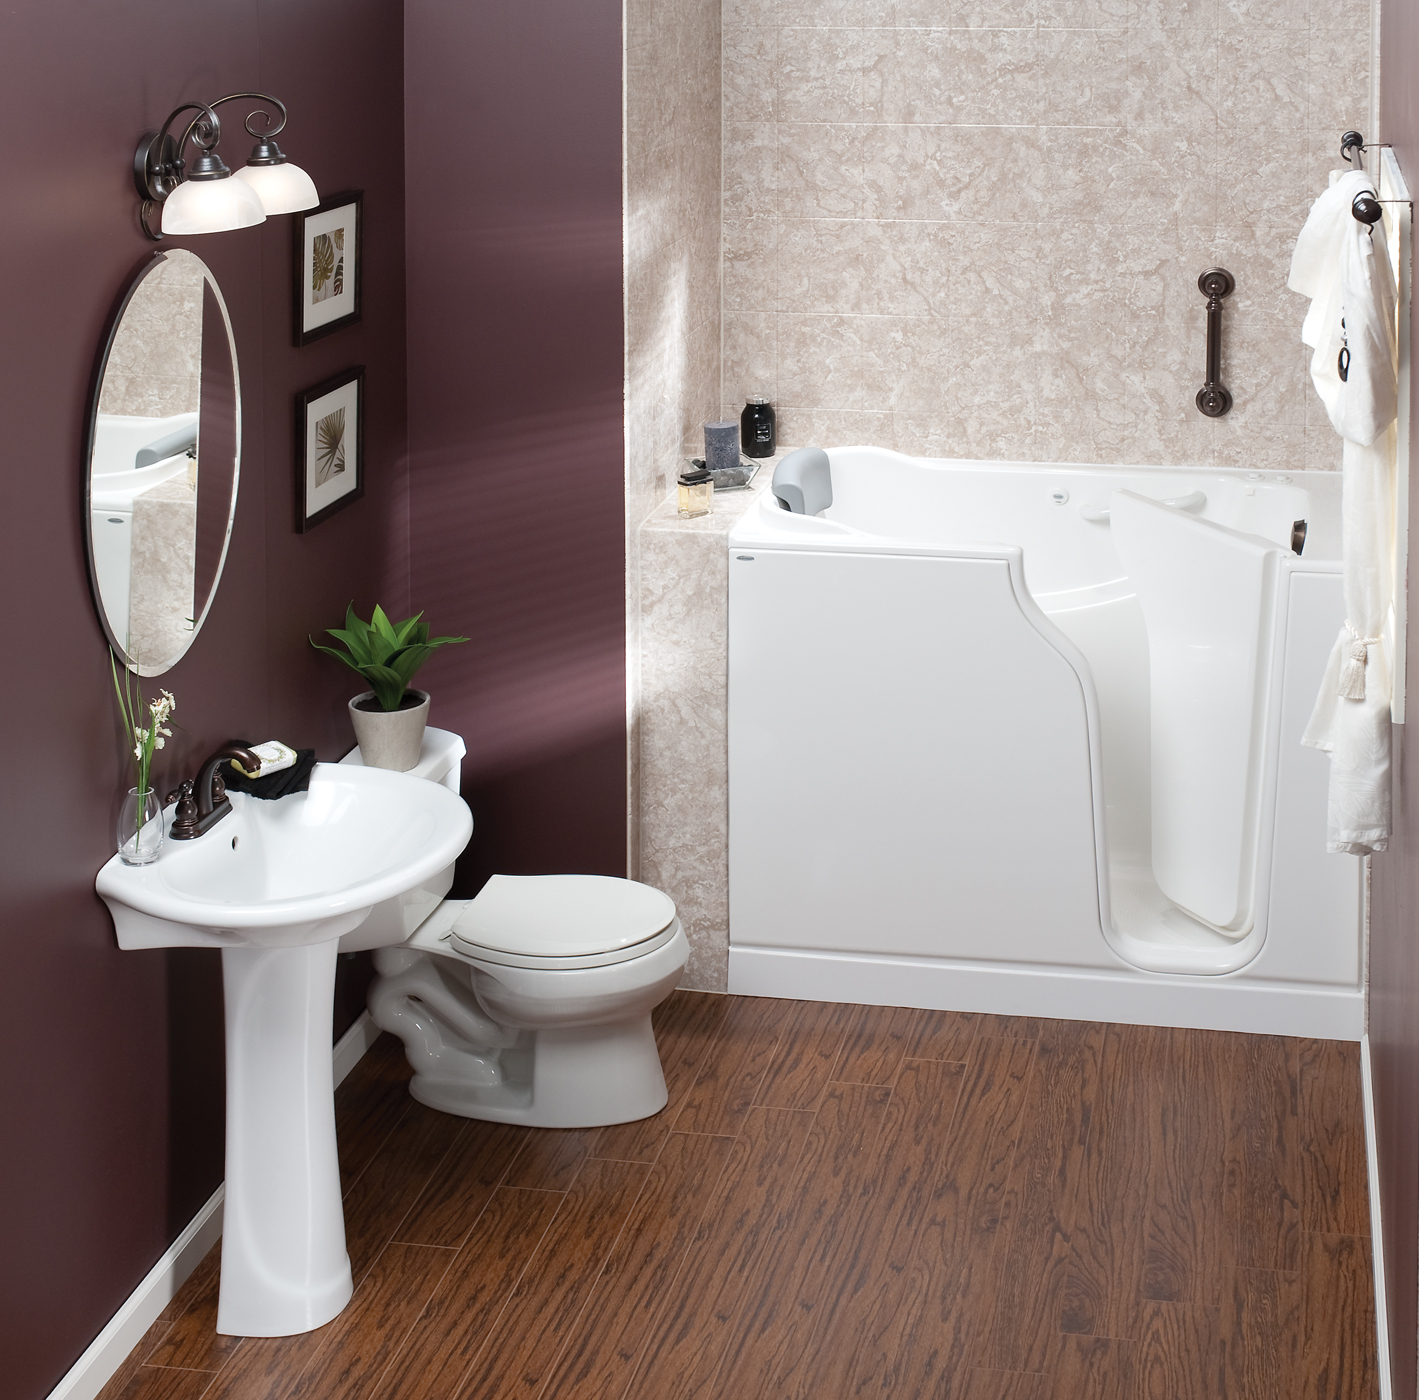 Walk in tubs chicago walk in tubs for elderly chicago for Bathroom ideas elderly